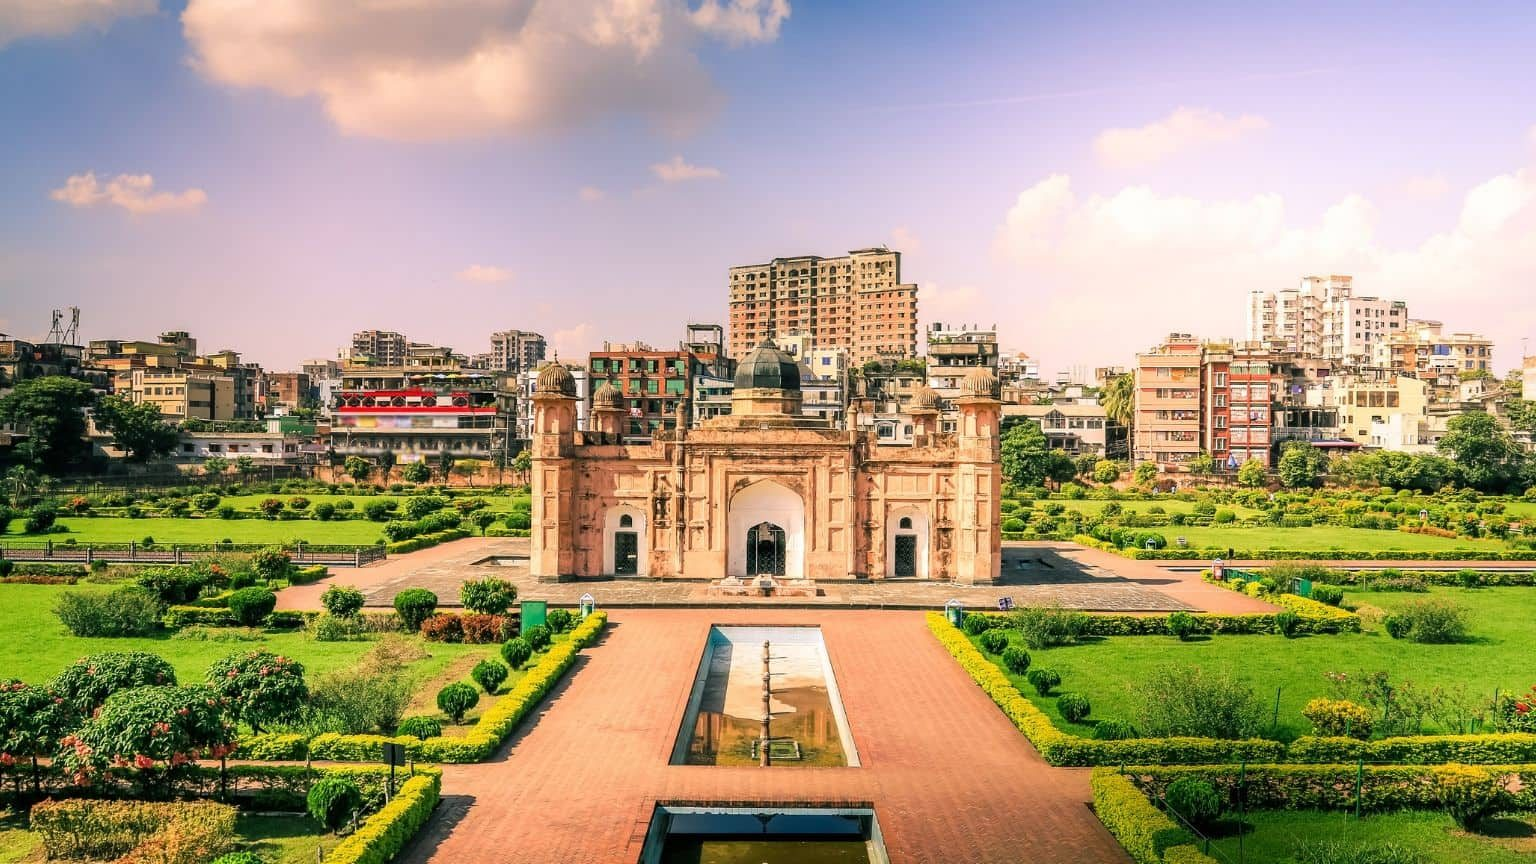 Lalbagh Fort in Bangladesh